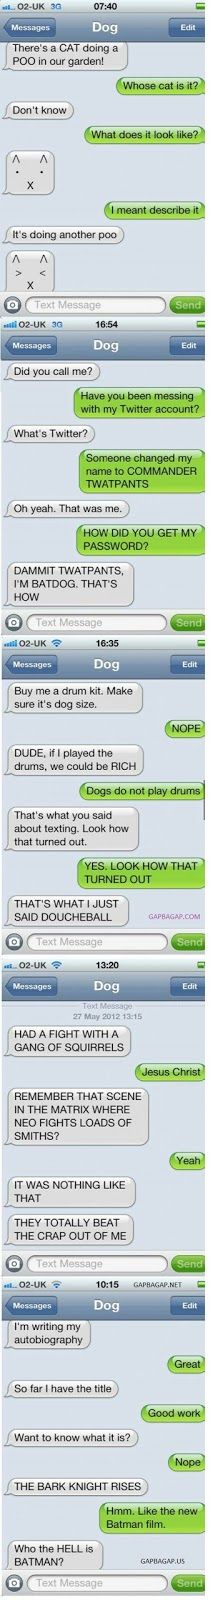 Top 5 #Funny Text Messages ft. Funny Dogs